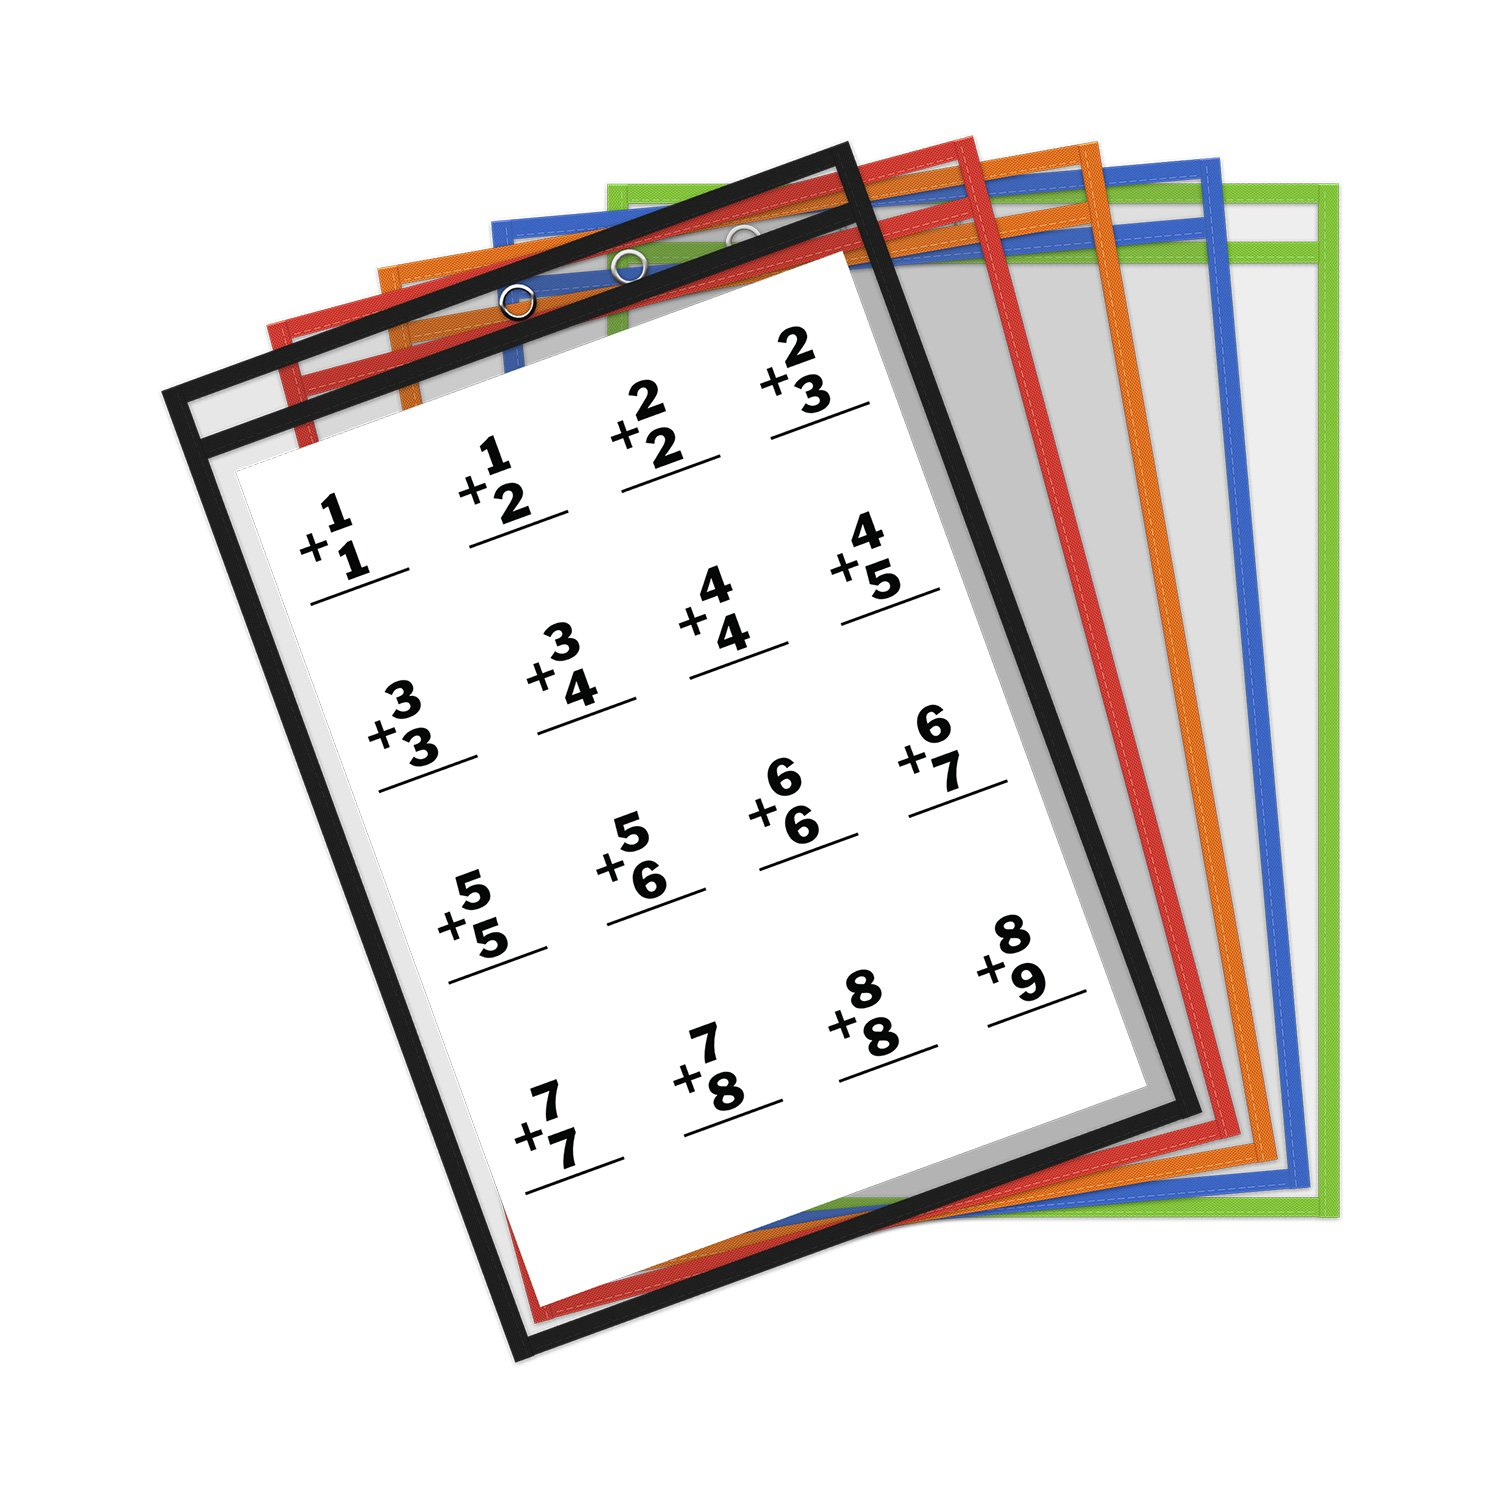 Thornton's Office Supplies Reusable Dry Erase Pockets, 8.5 x 11 Inches, Assorted Colors, 30 Pockets per Pack (61370) TOS-61370